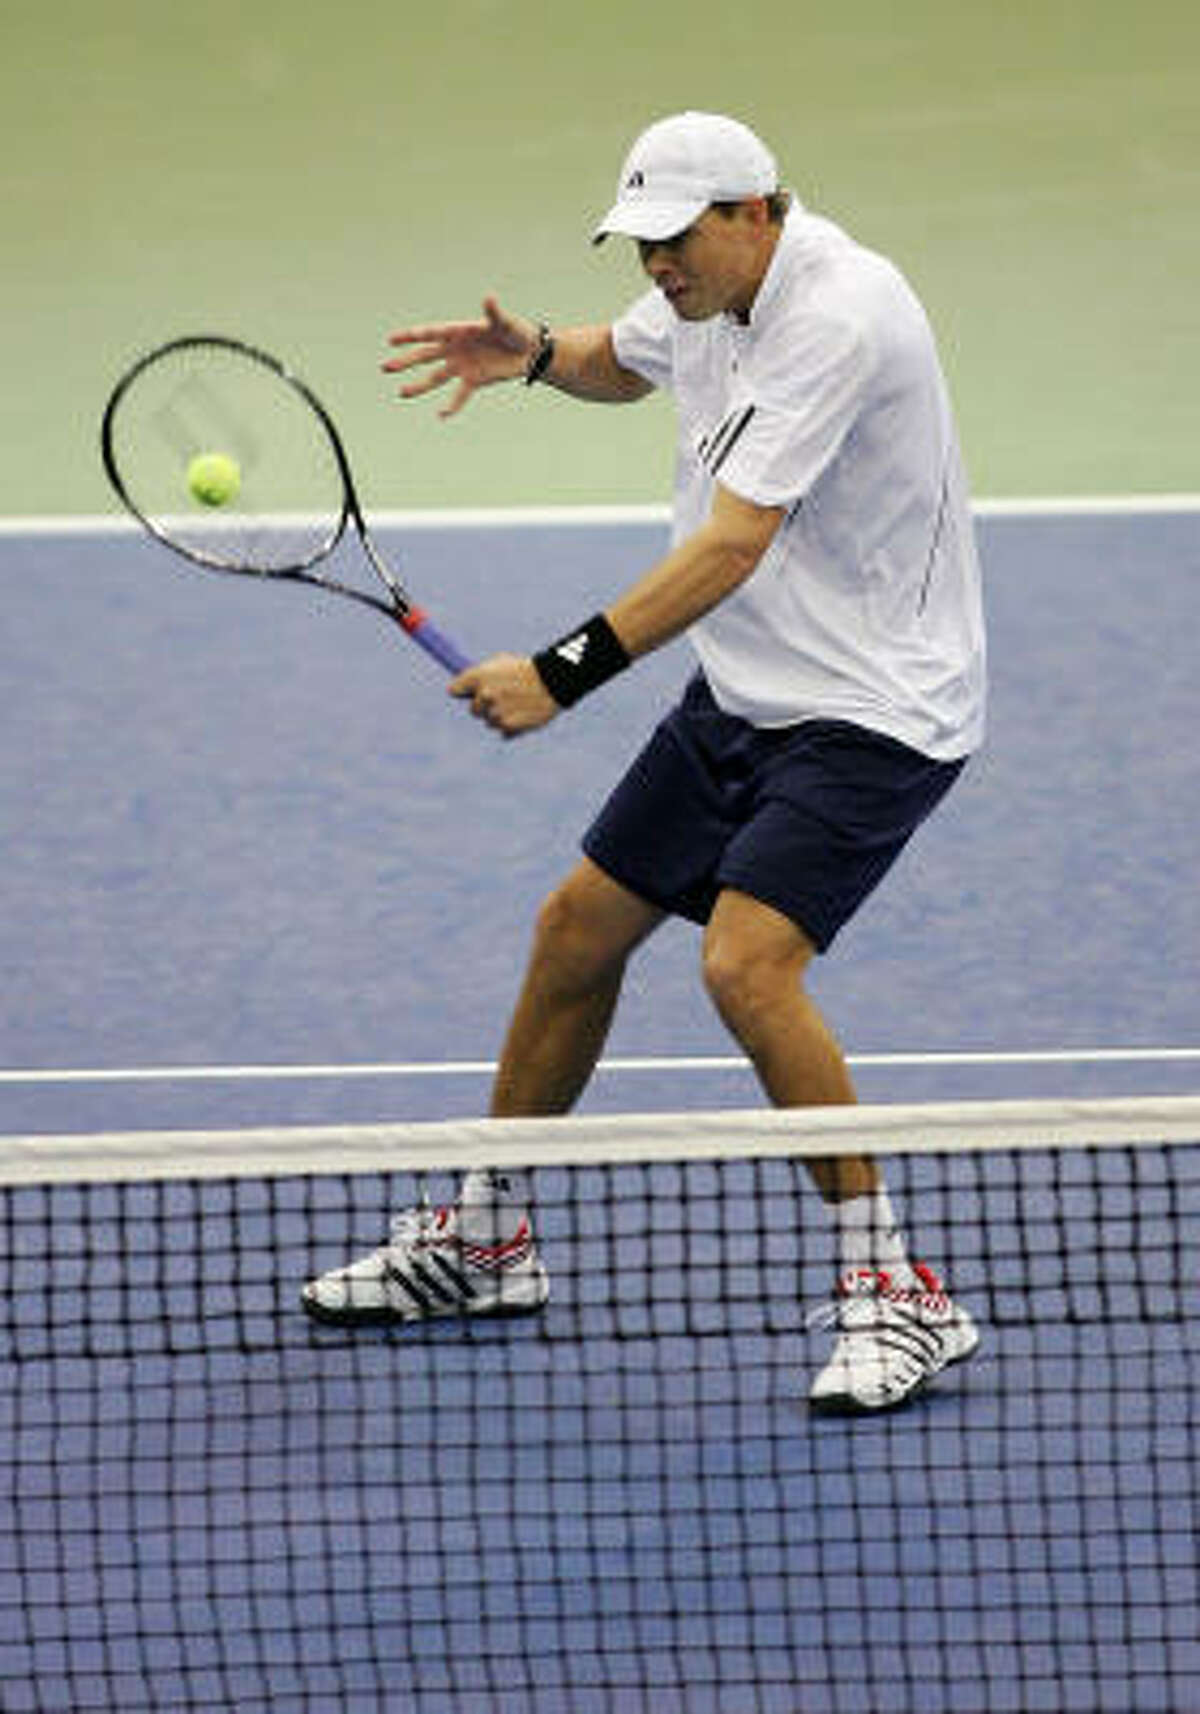 Bob Bryan of the U.S. volleys against Igor Andreev and Nikolay Davydenko of Russia during the second day of the Davis Cup Final at the Memorial Coliseum in Portland, Oregon.